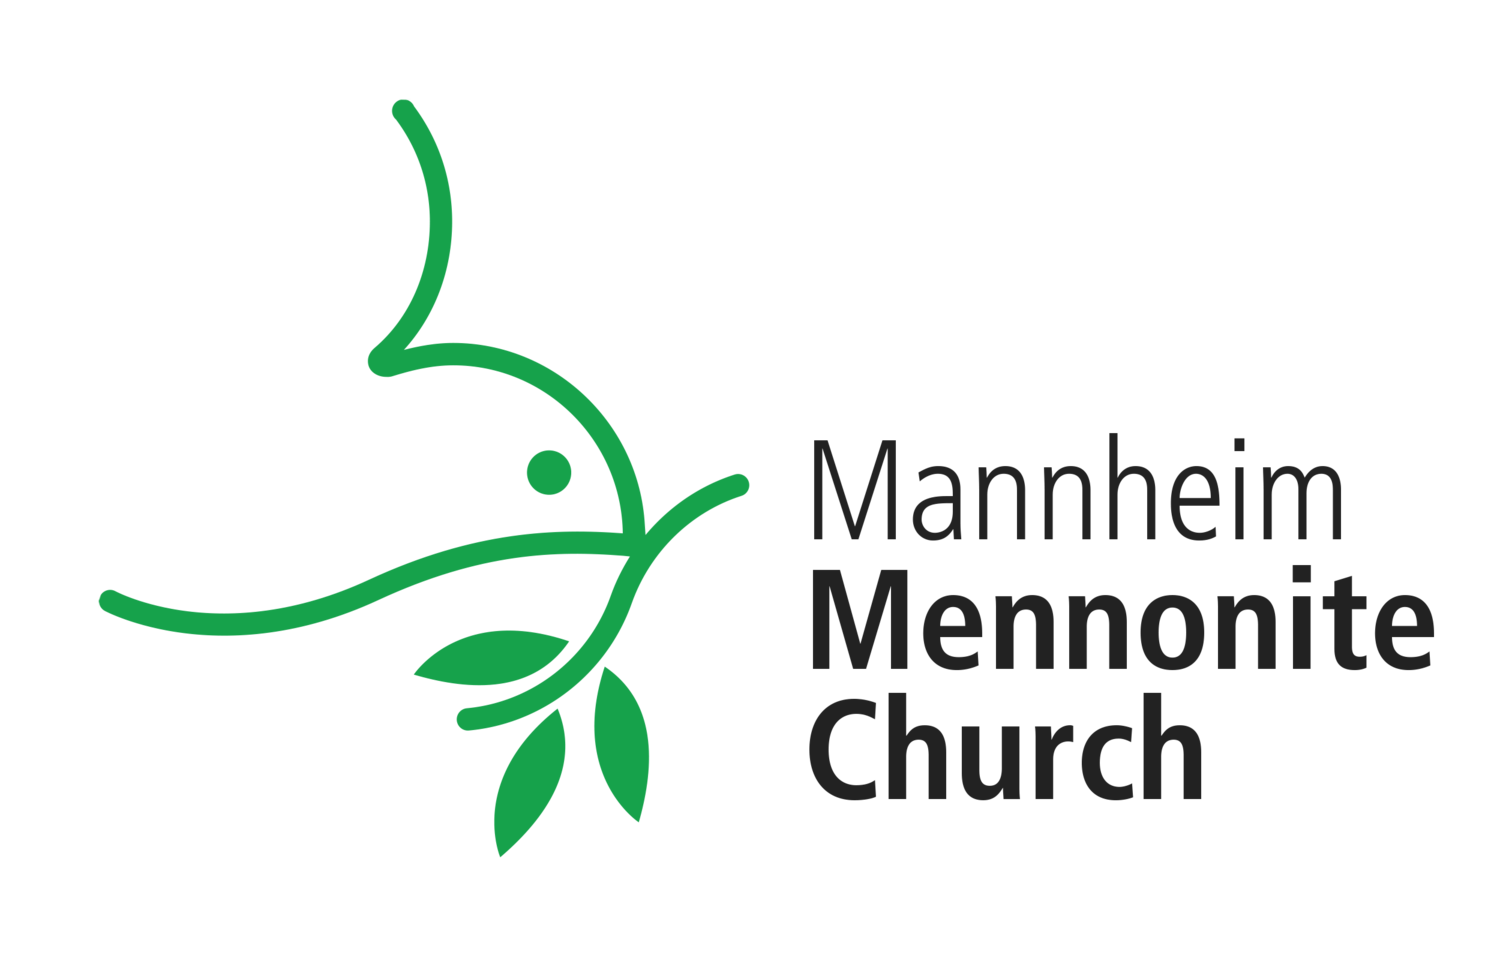 Mannheim Mennonite Church